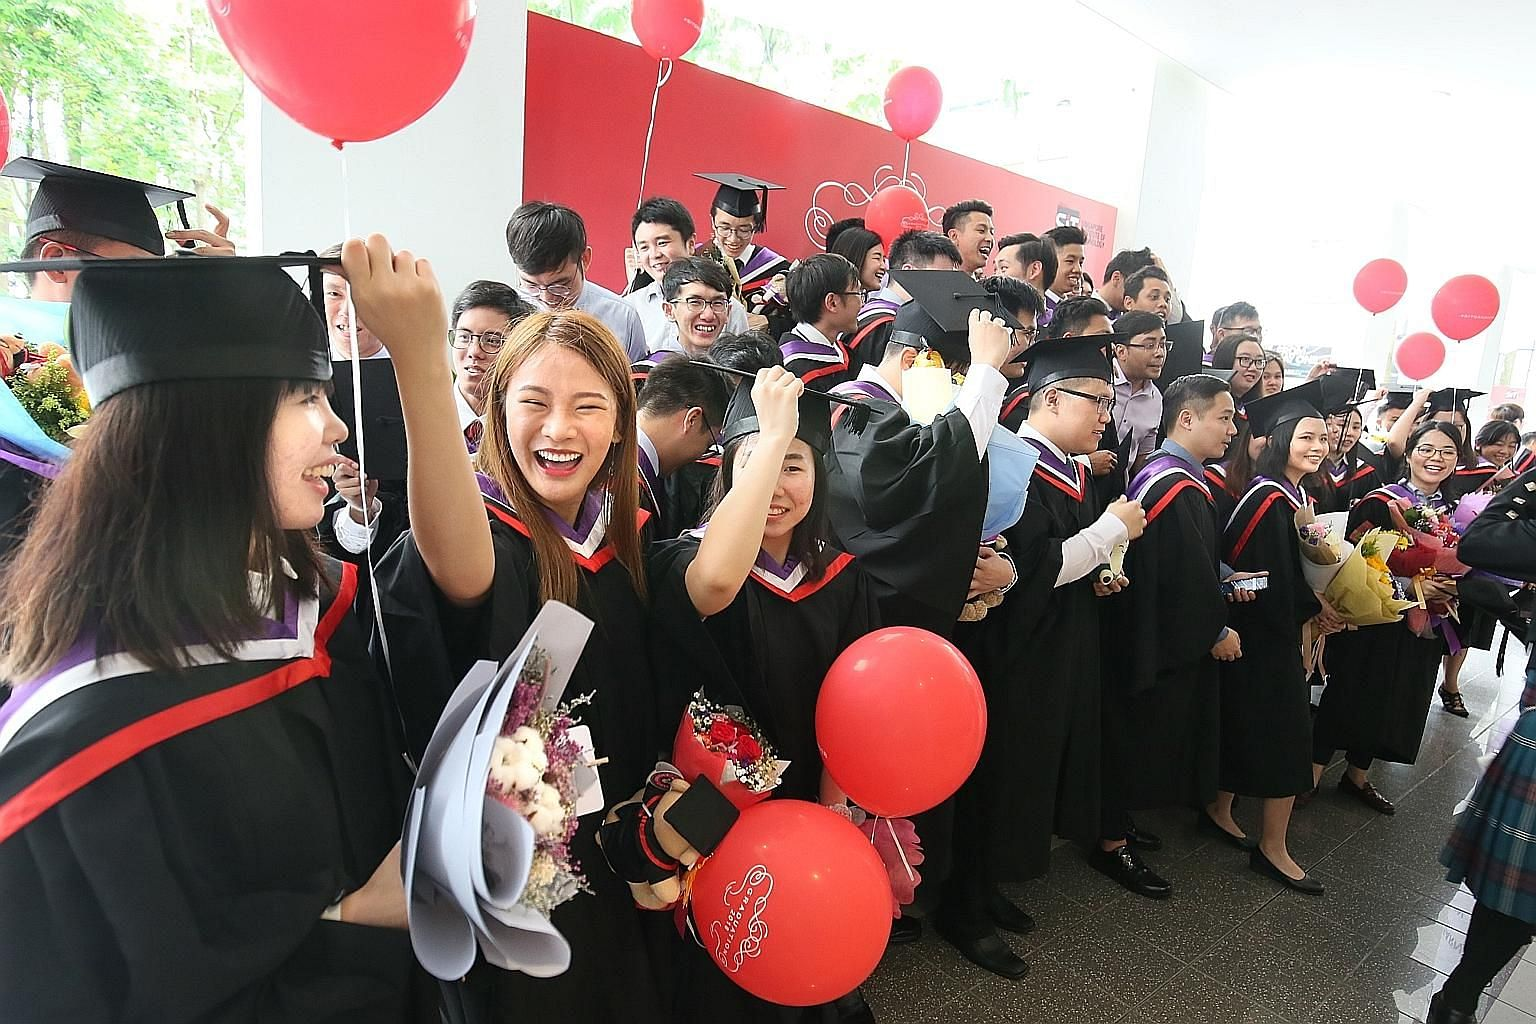 OECD education and skills chief Andreas Schleicher says the degree aspirations of young Singaporeans are understandable, as research around the world has shown that those with university degrees command a premium in the marketplace.